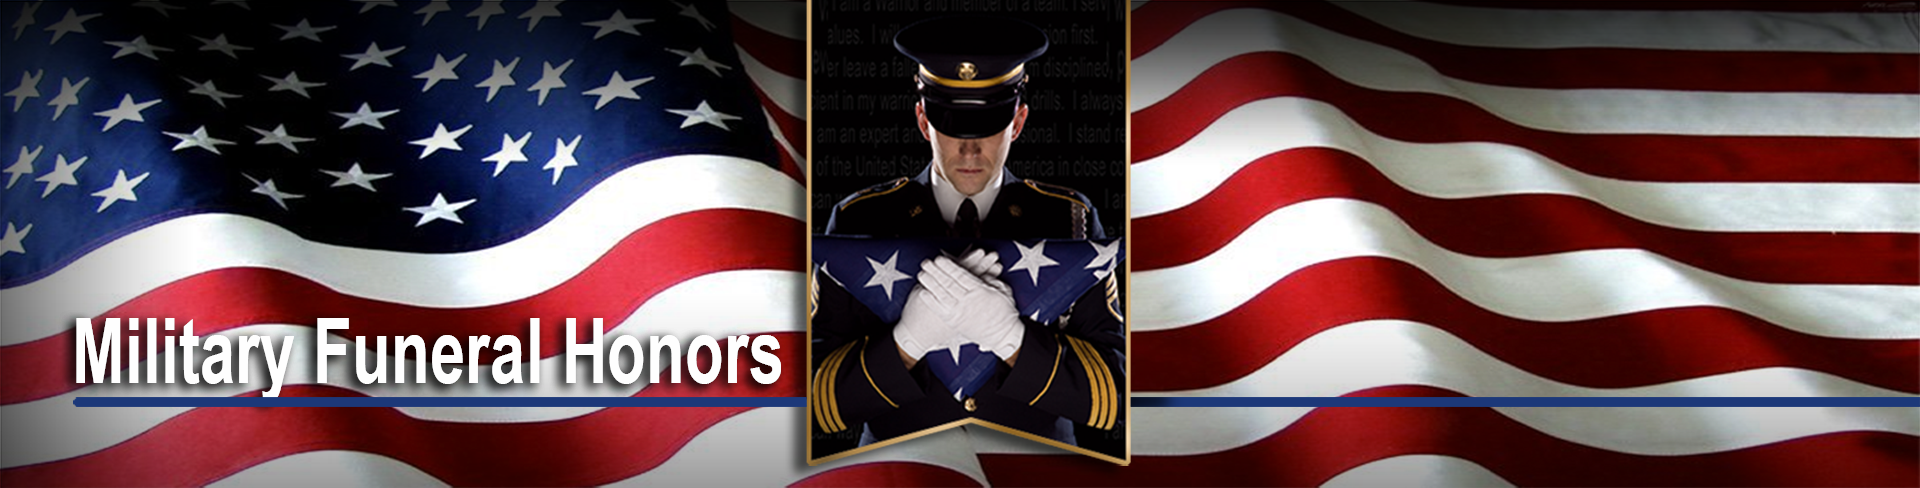 Header image for Military Funeral Honors page